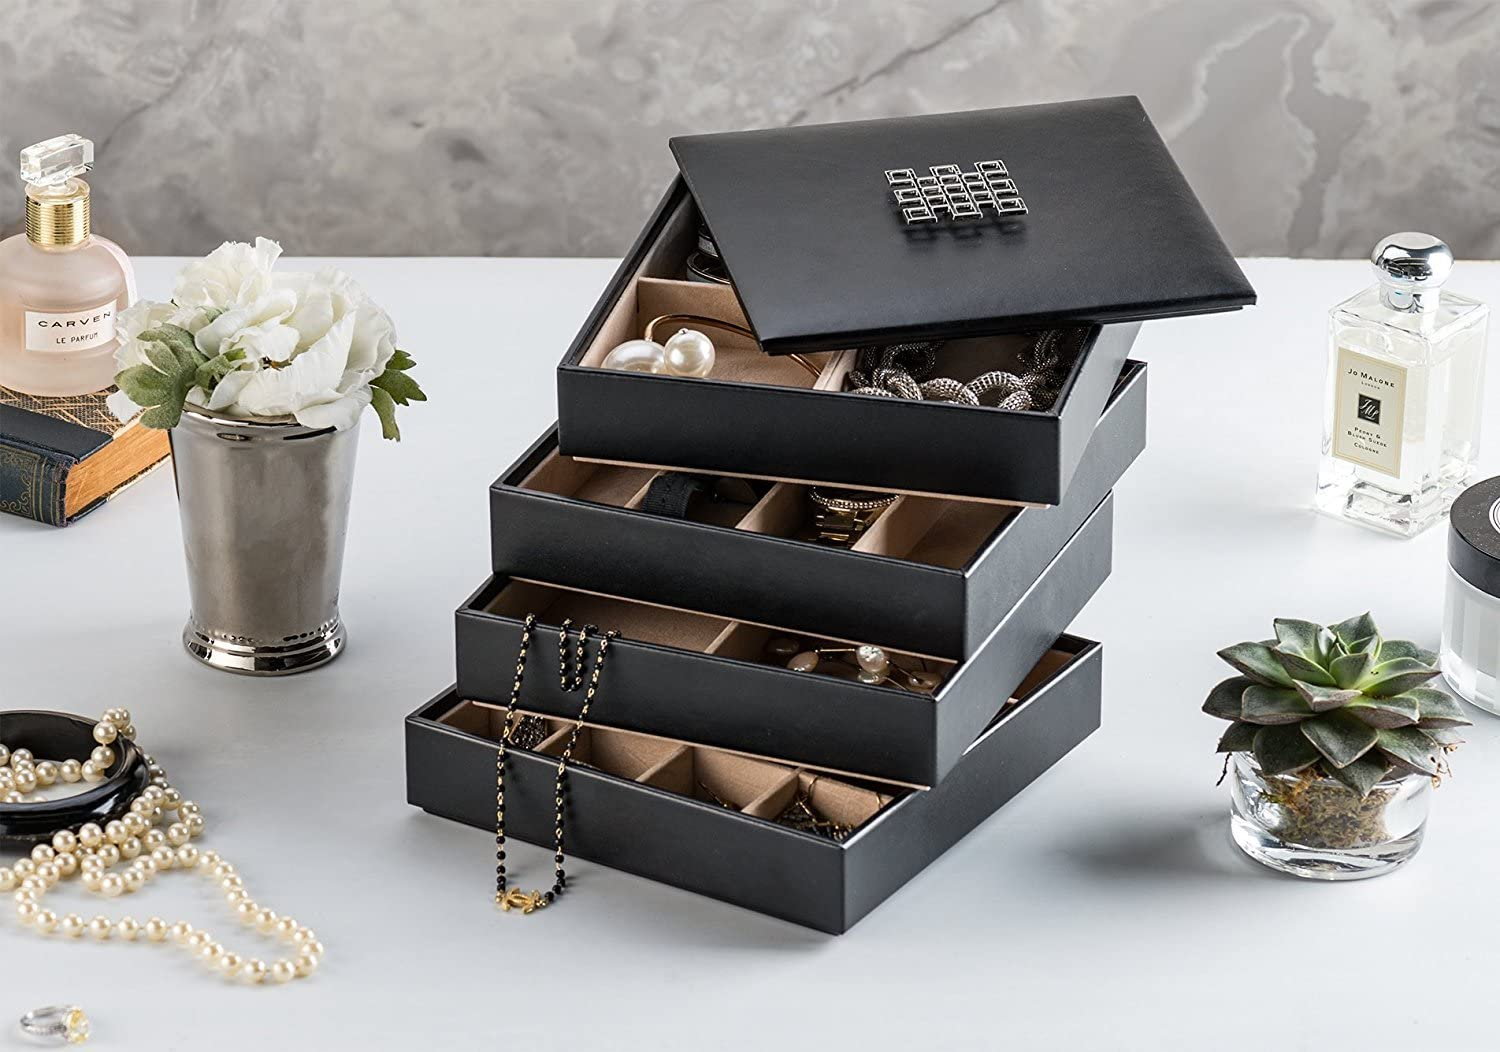 Four black, stackable jewelry cubbies stacked on top of each other